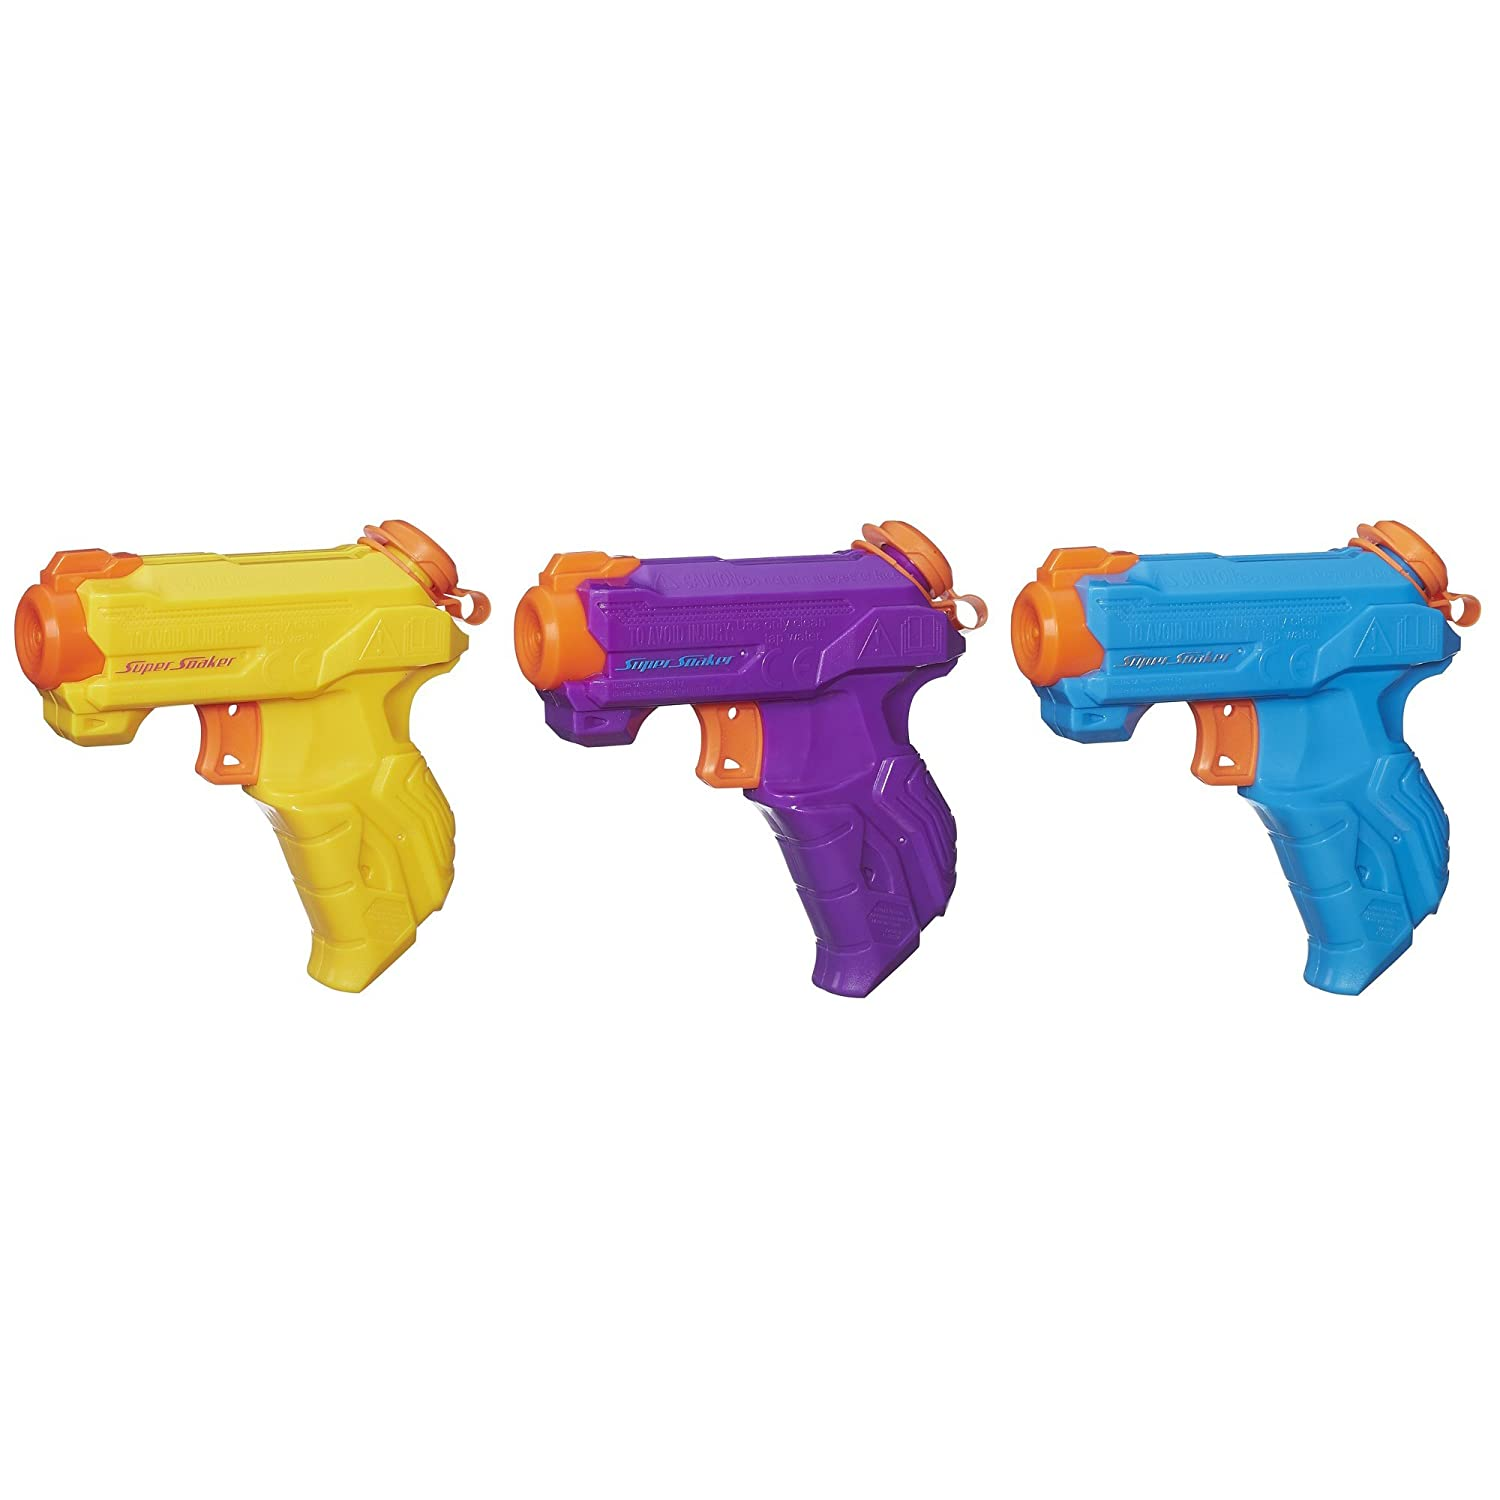 nerf squirt guns Wanted: Nerf's New Line Of Military Grade Water Guns | Co.Design.